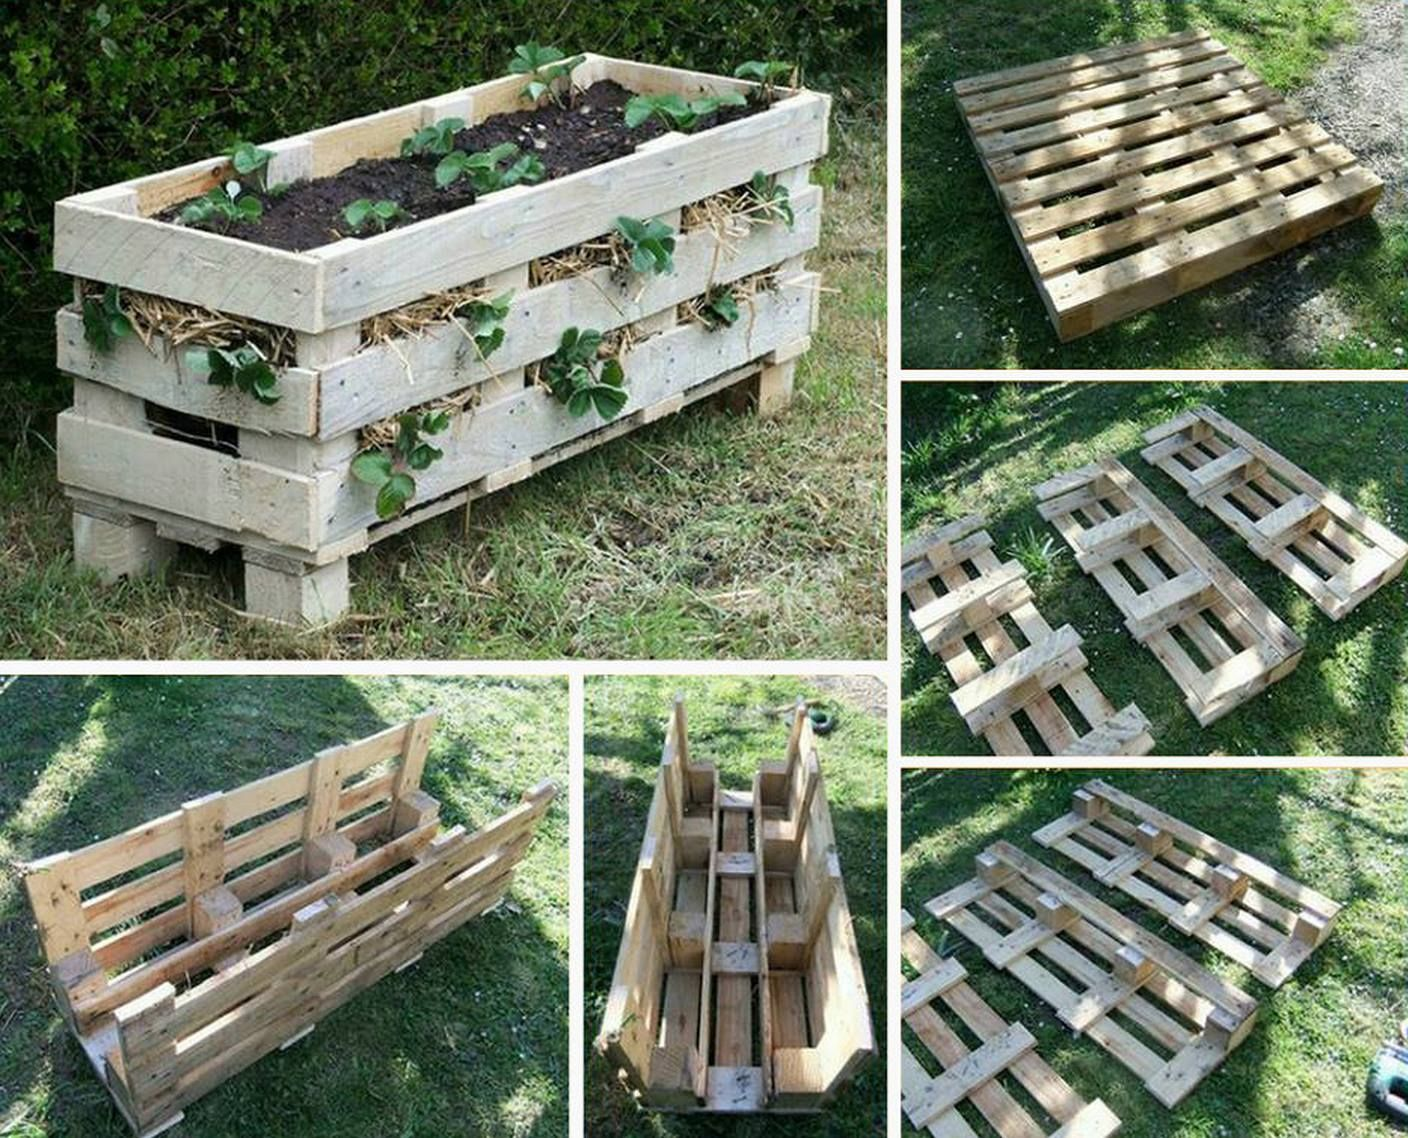 Diy Planter Box From Pallets Ideas For Strawberry Planters Google Search Garden